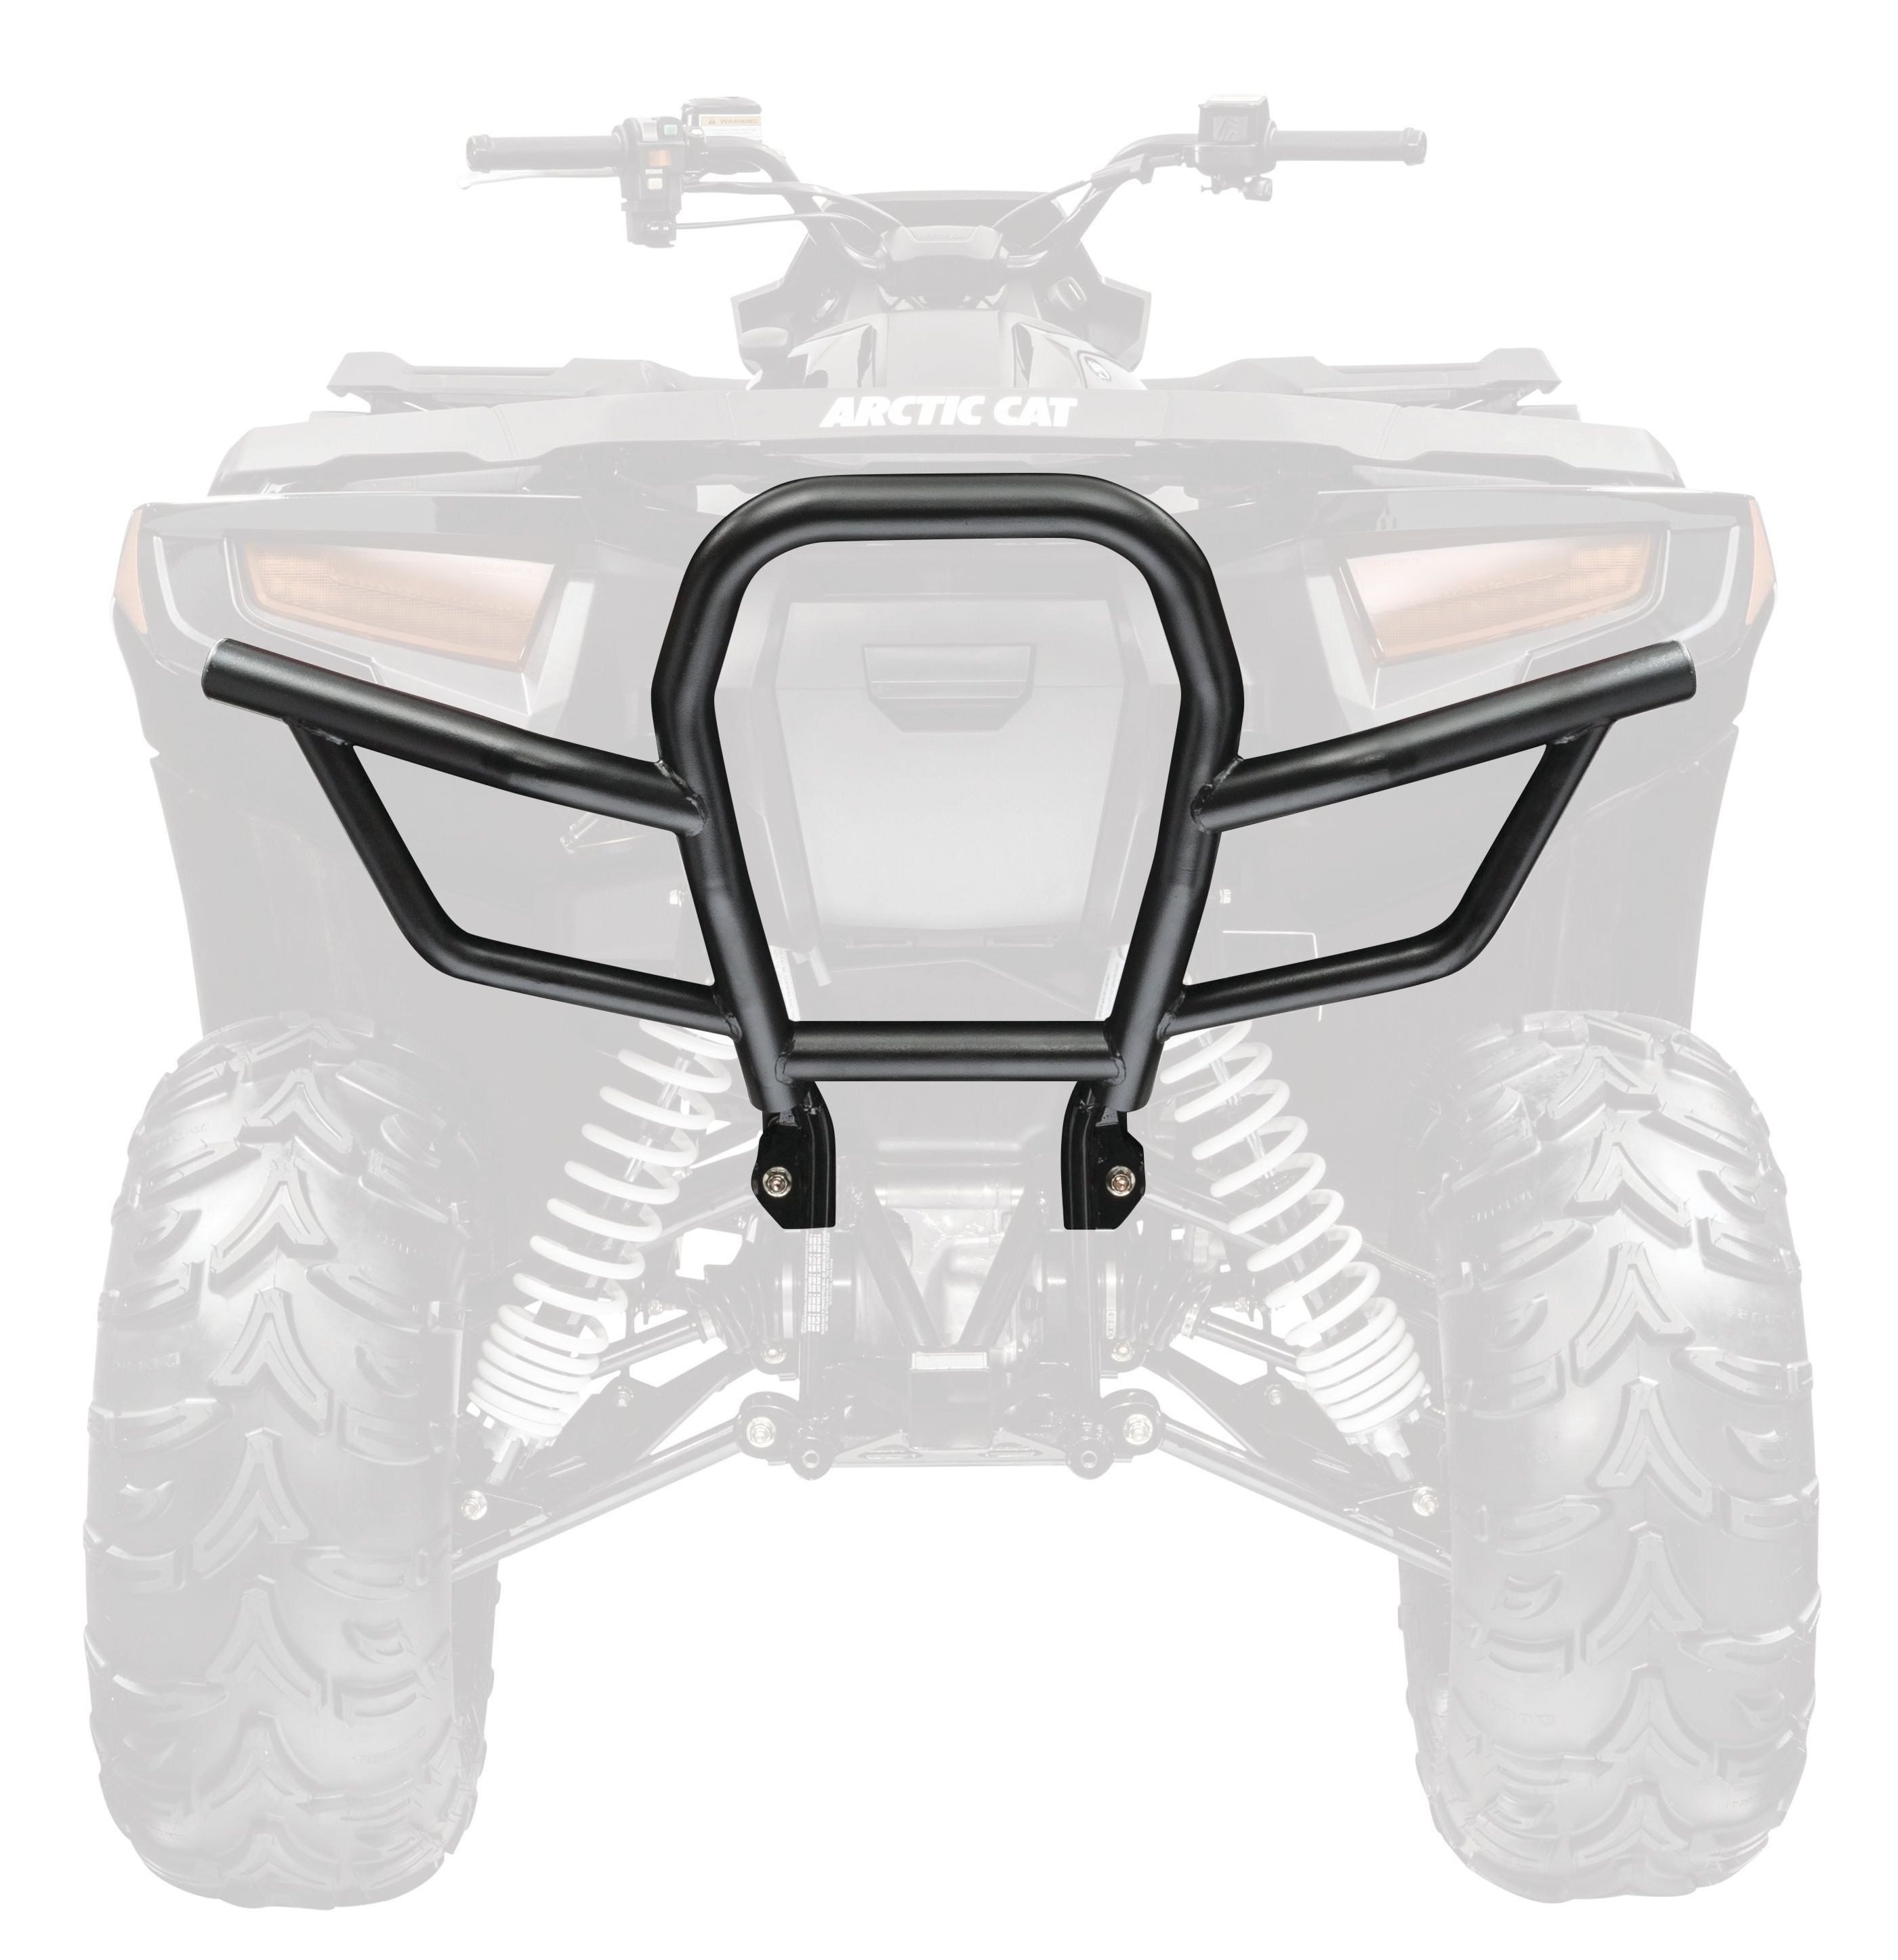 Arctic Cat ATV Front Brushguard Bumper See Listing for Fitment 2436-506